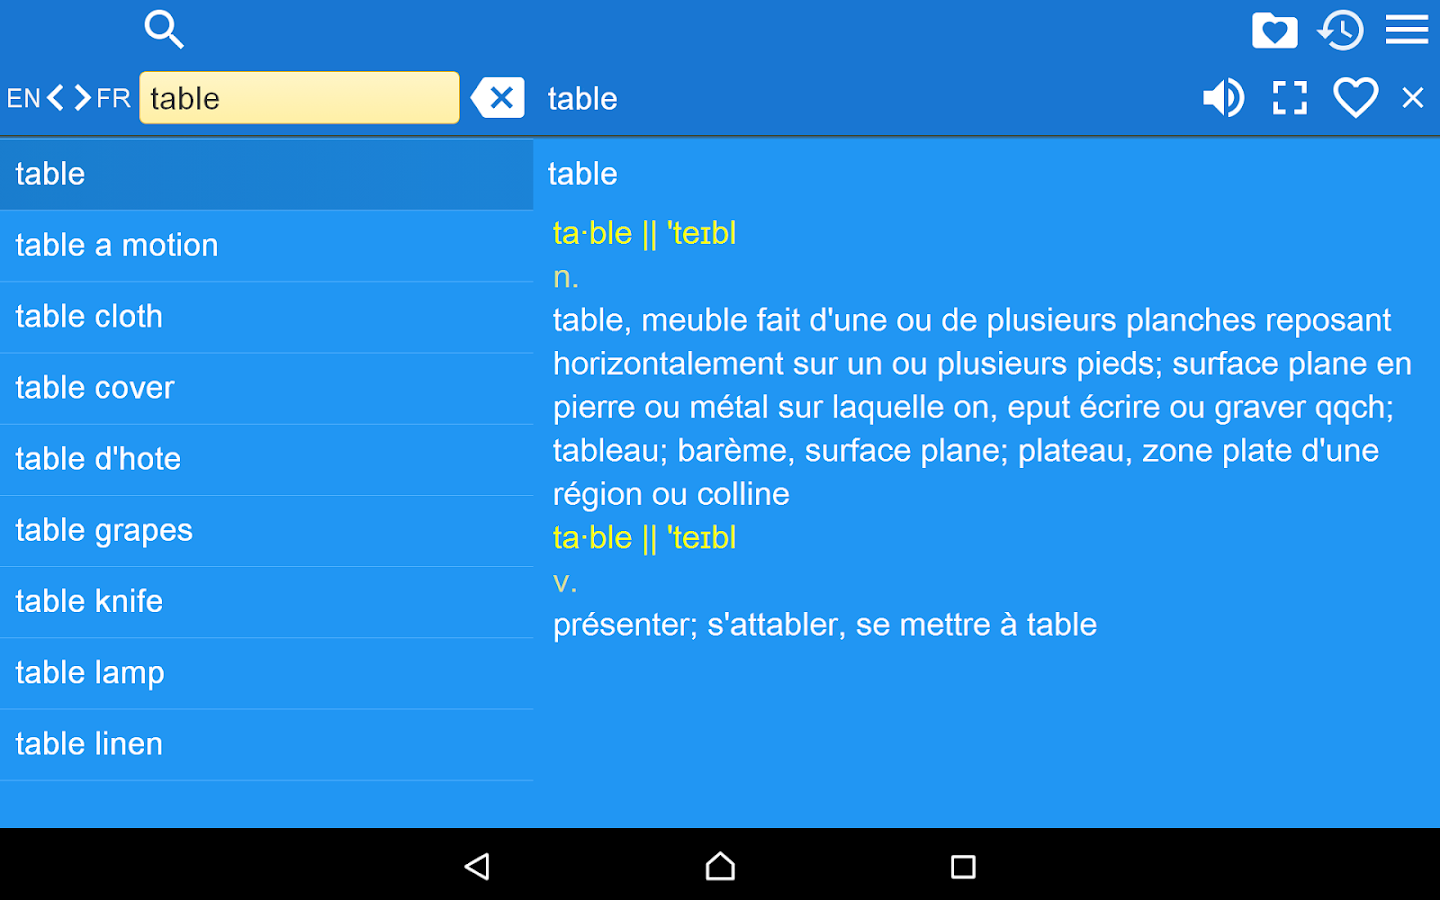 Bedroom english french dictionary wordreference com - English French Dictionary Free Screenshot